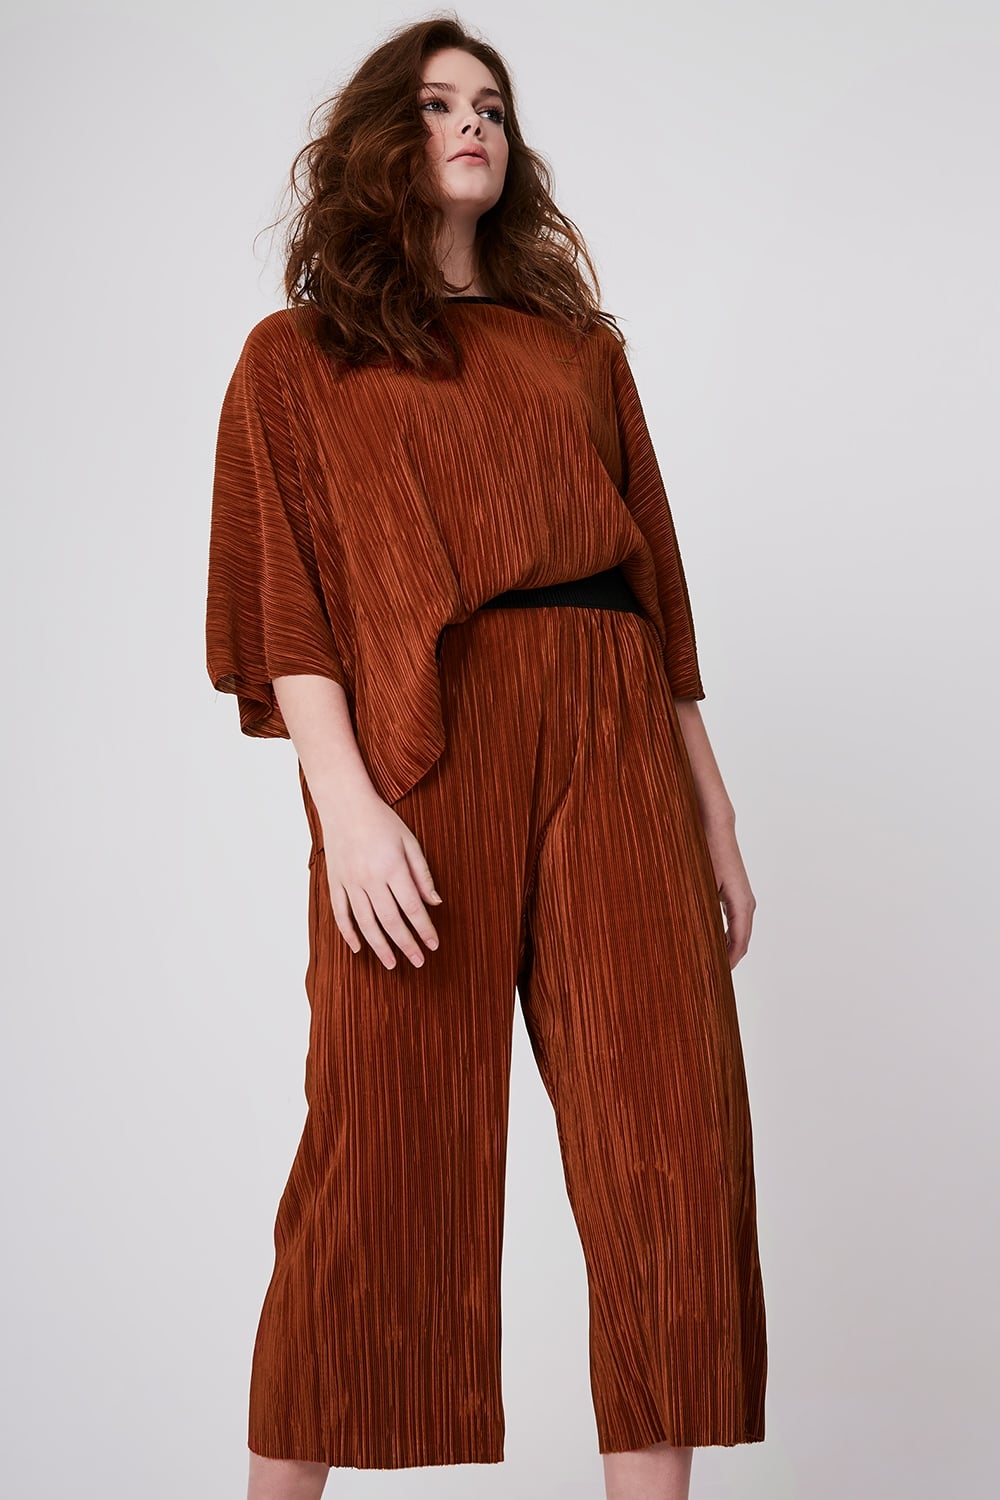 pleated-top-p5320-7868_image